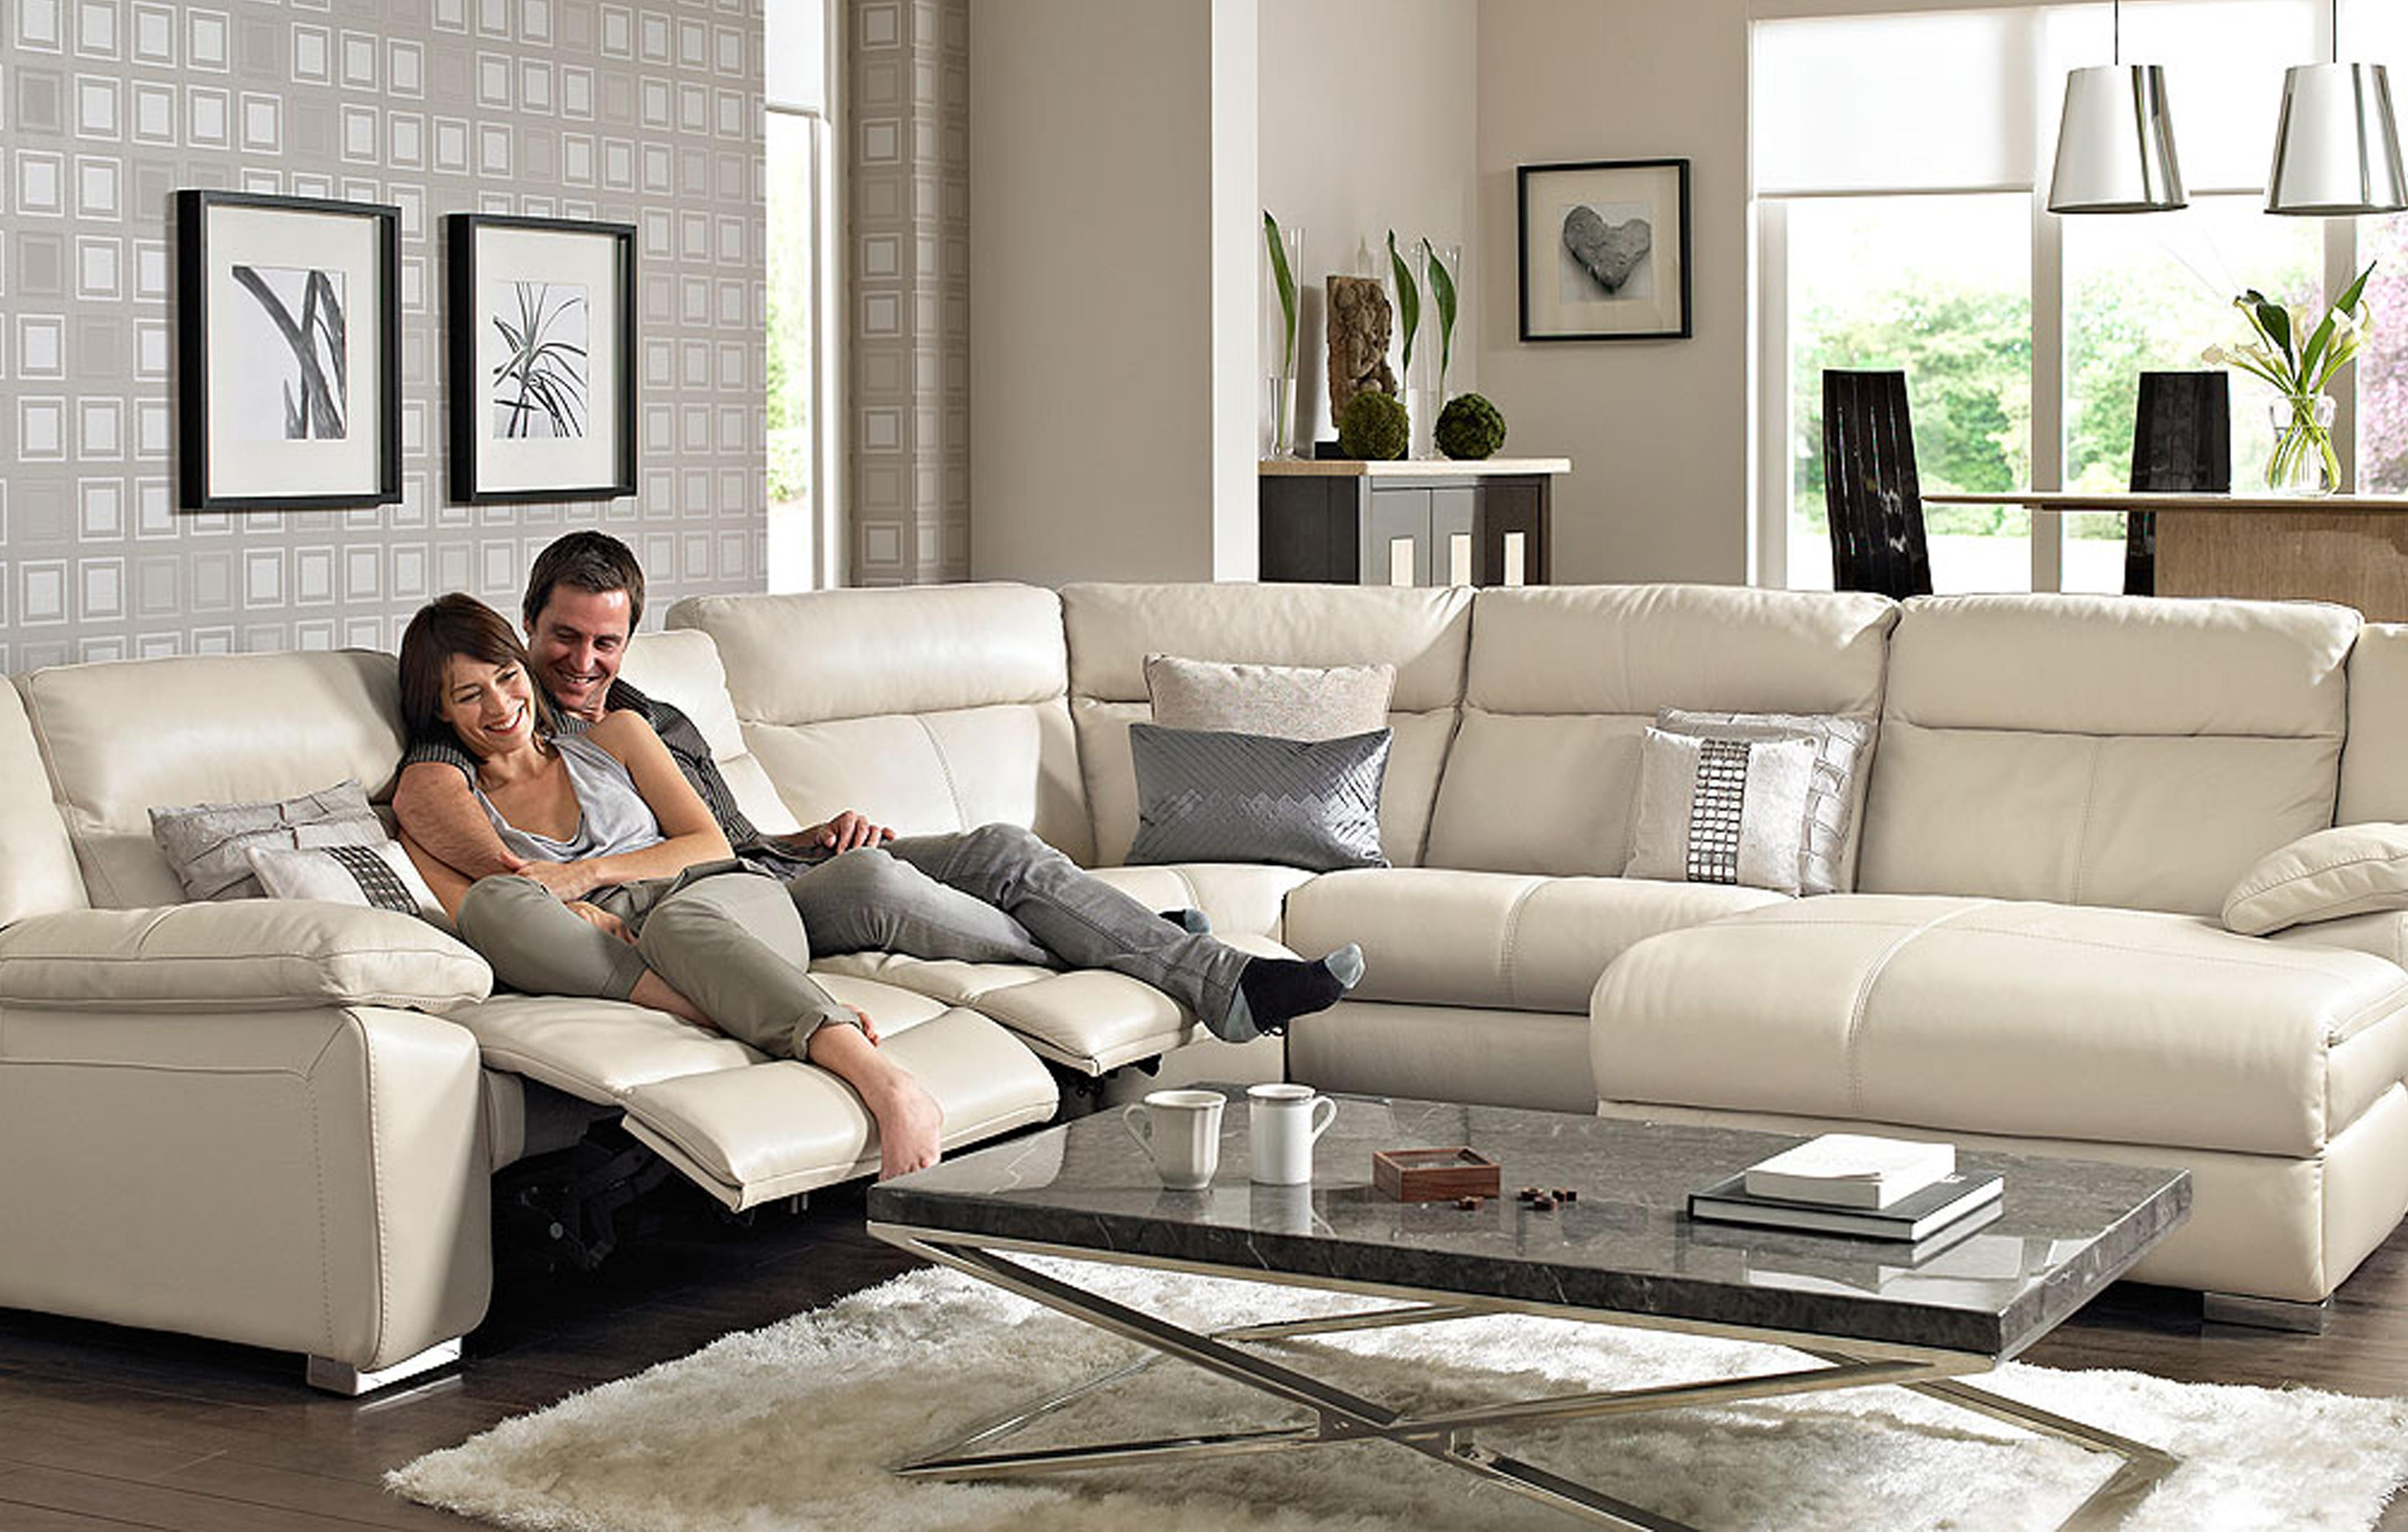 Corner Recliner Sofas In Fabric and Leather DFS